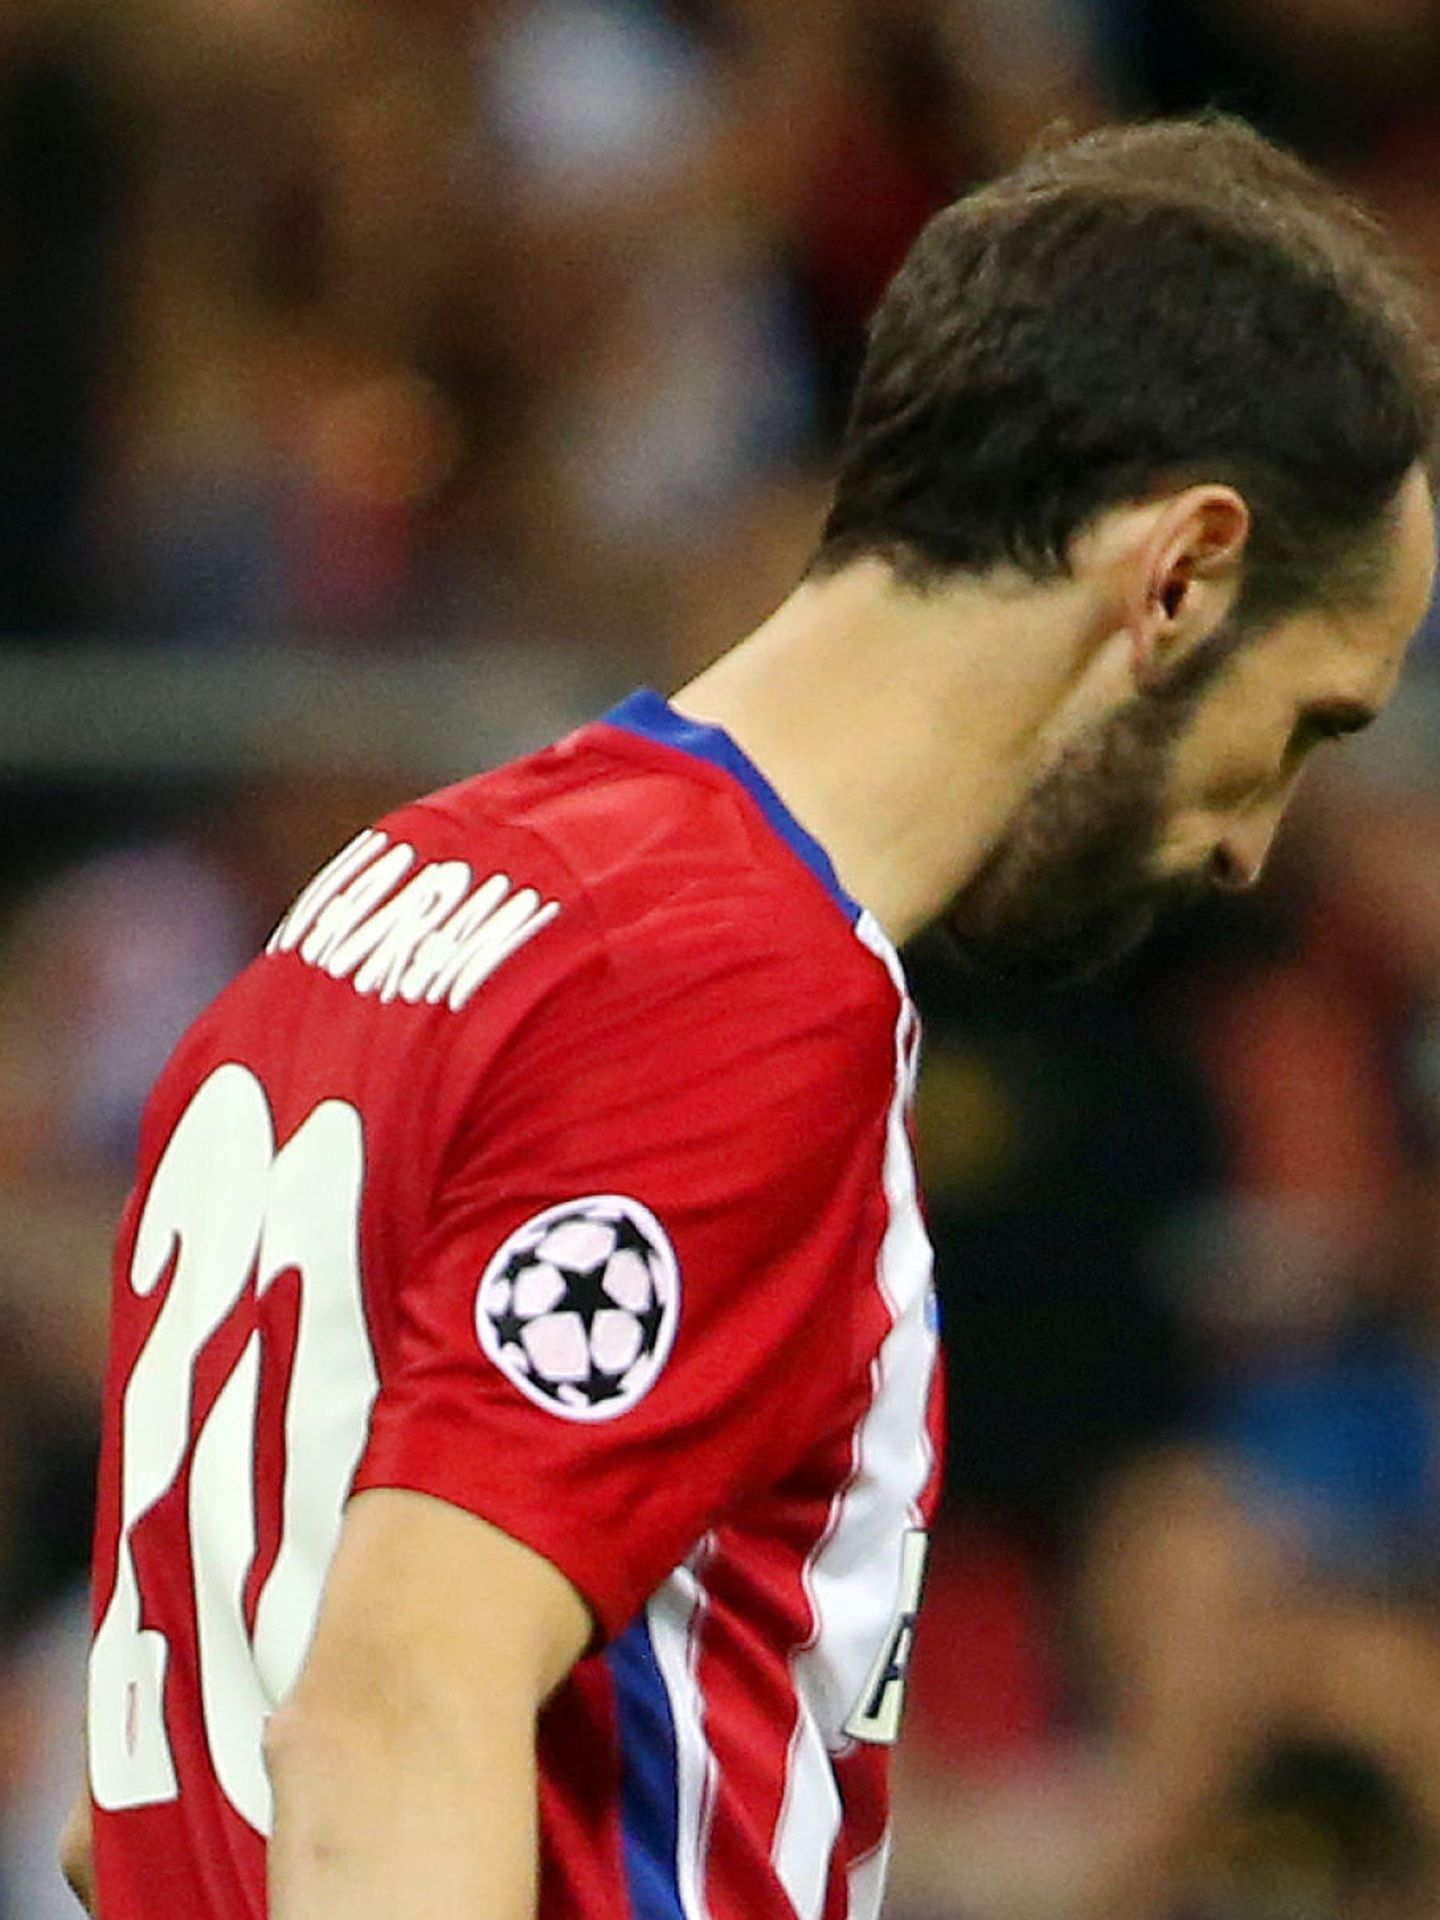 Soccer Football - Atletico Madrid v Real Madrid - UEFA Champions League Final - San Siro Stadium, Milan, Italy - 28 5 16 Atletico Madrid's Juanfran looks dejected after missing during the penalty shootout Reuters   Stefano Rellandini Livepic EDITORIAL USE ONLY.